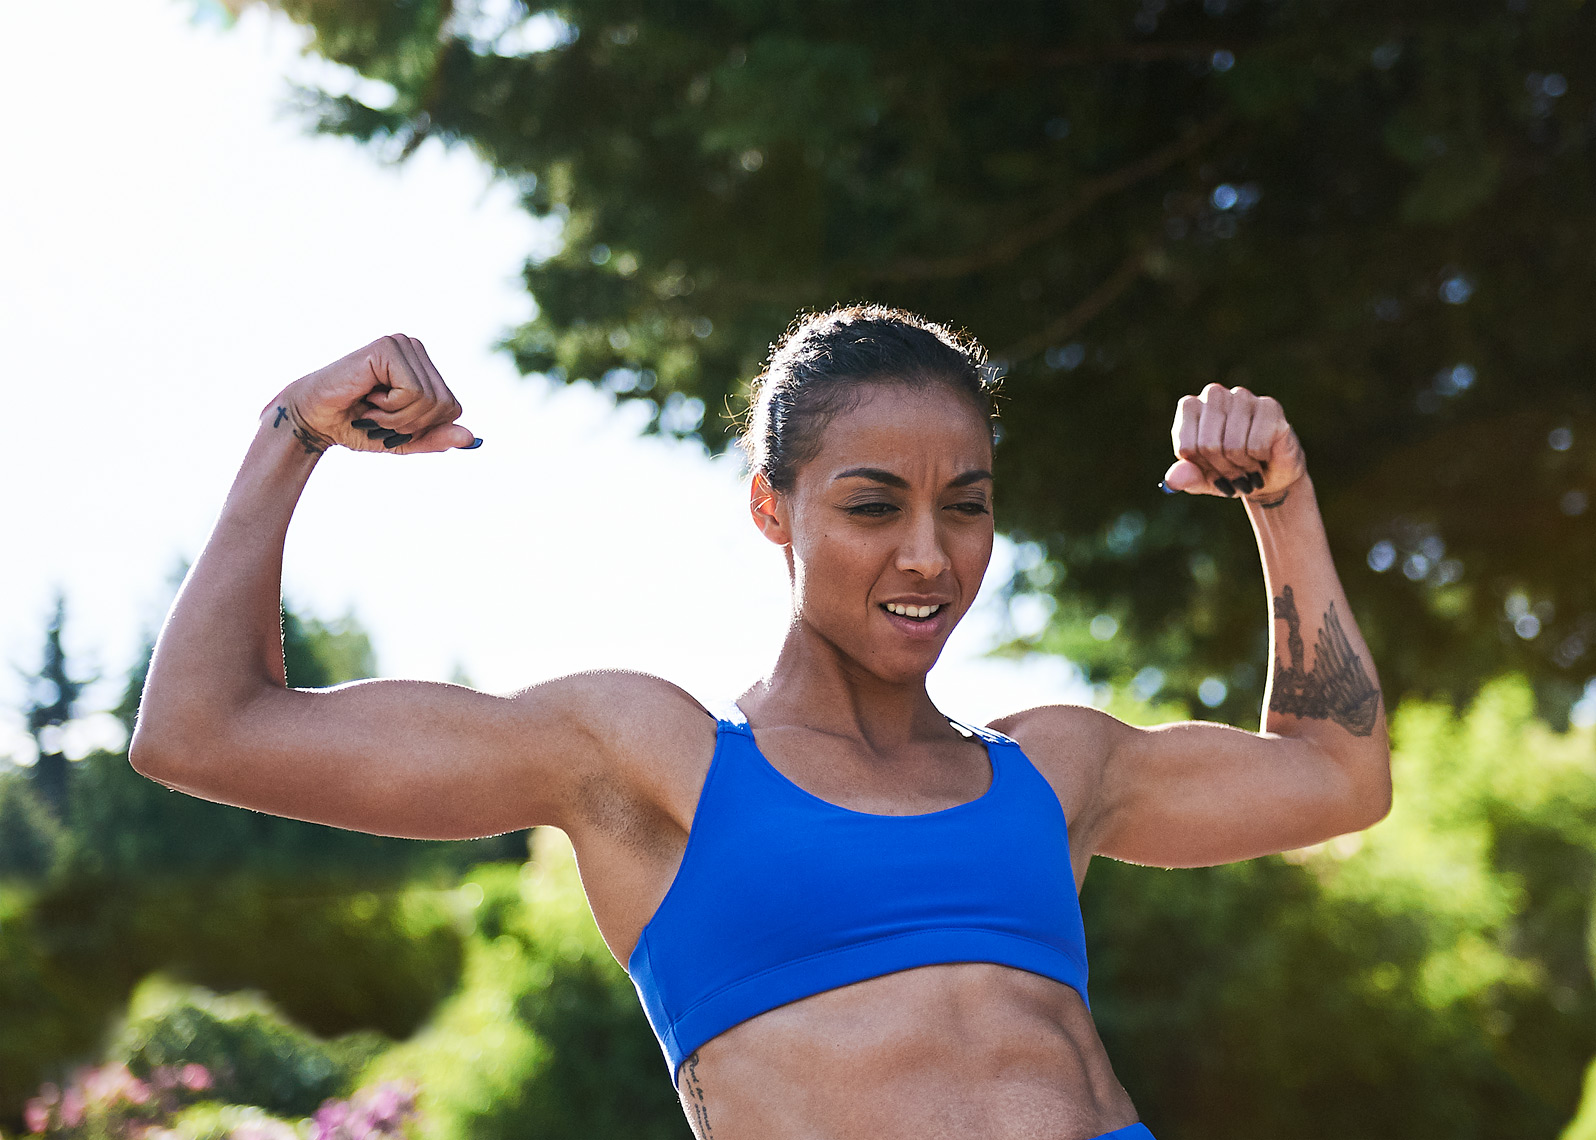 woman athlete flexes her muscles